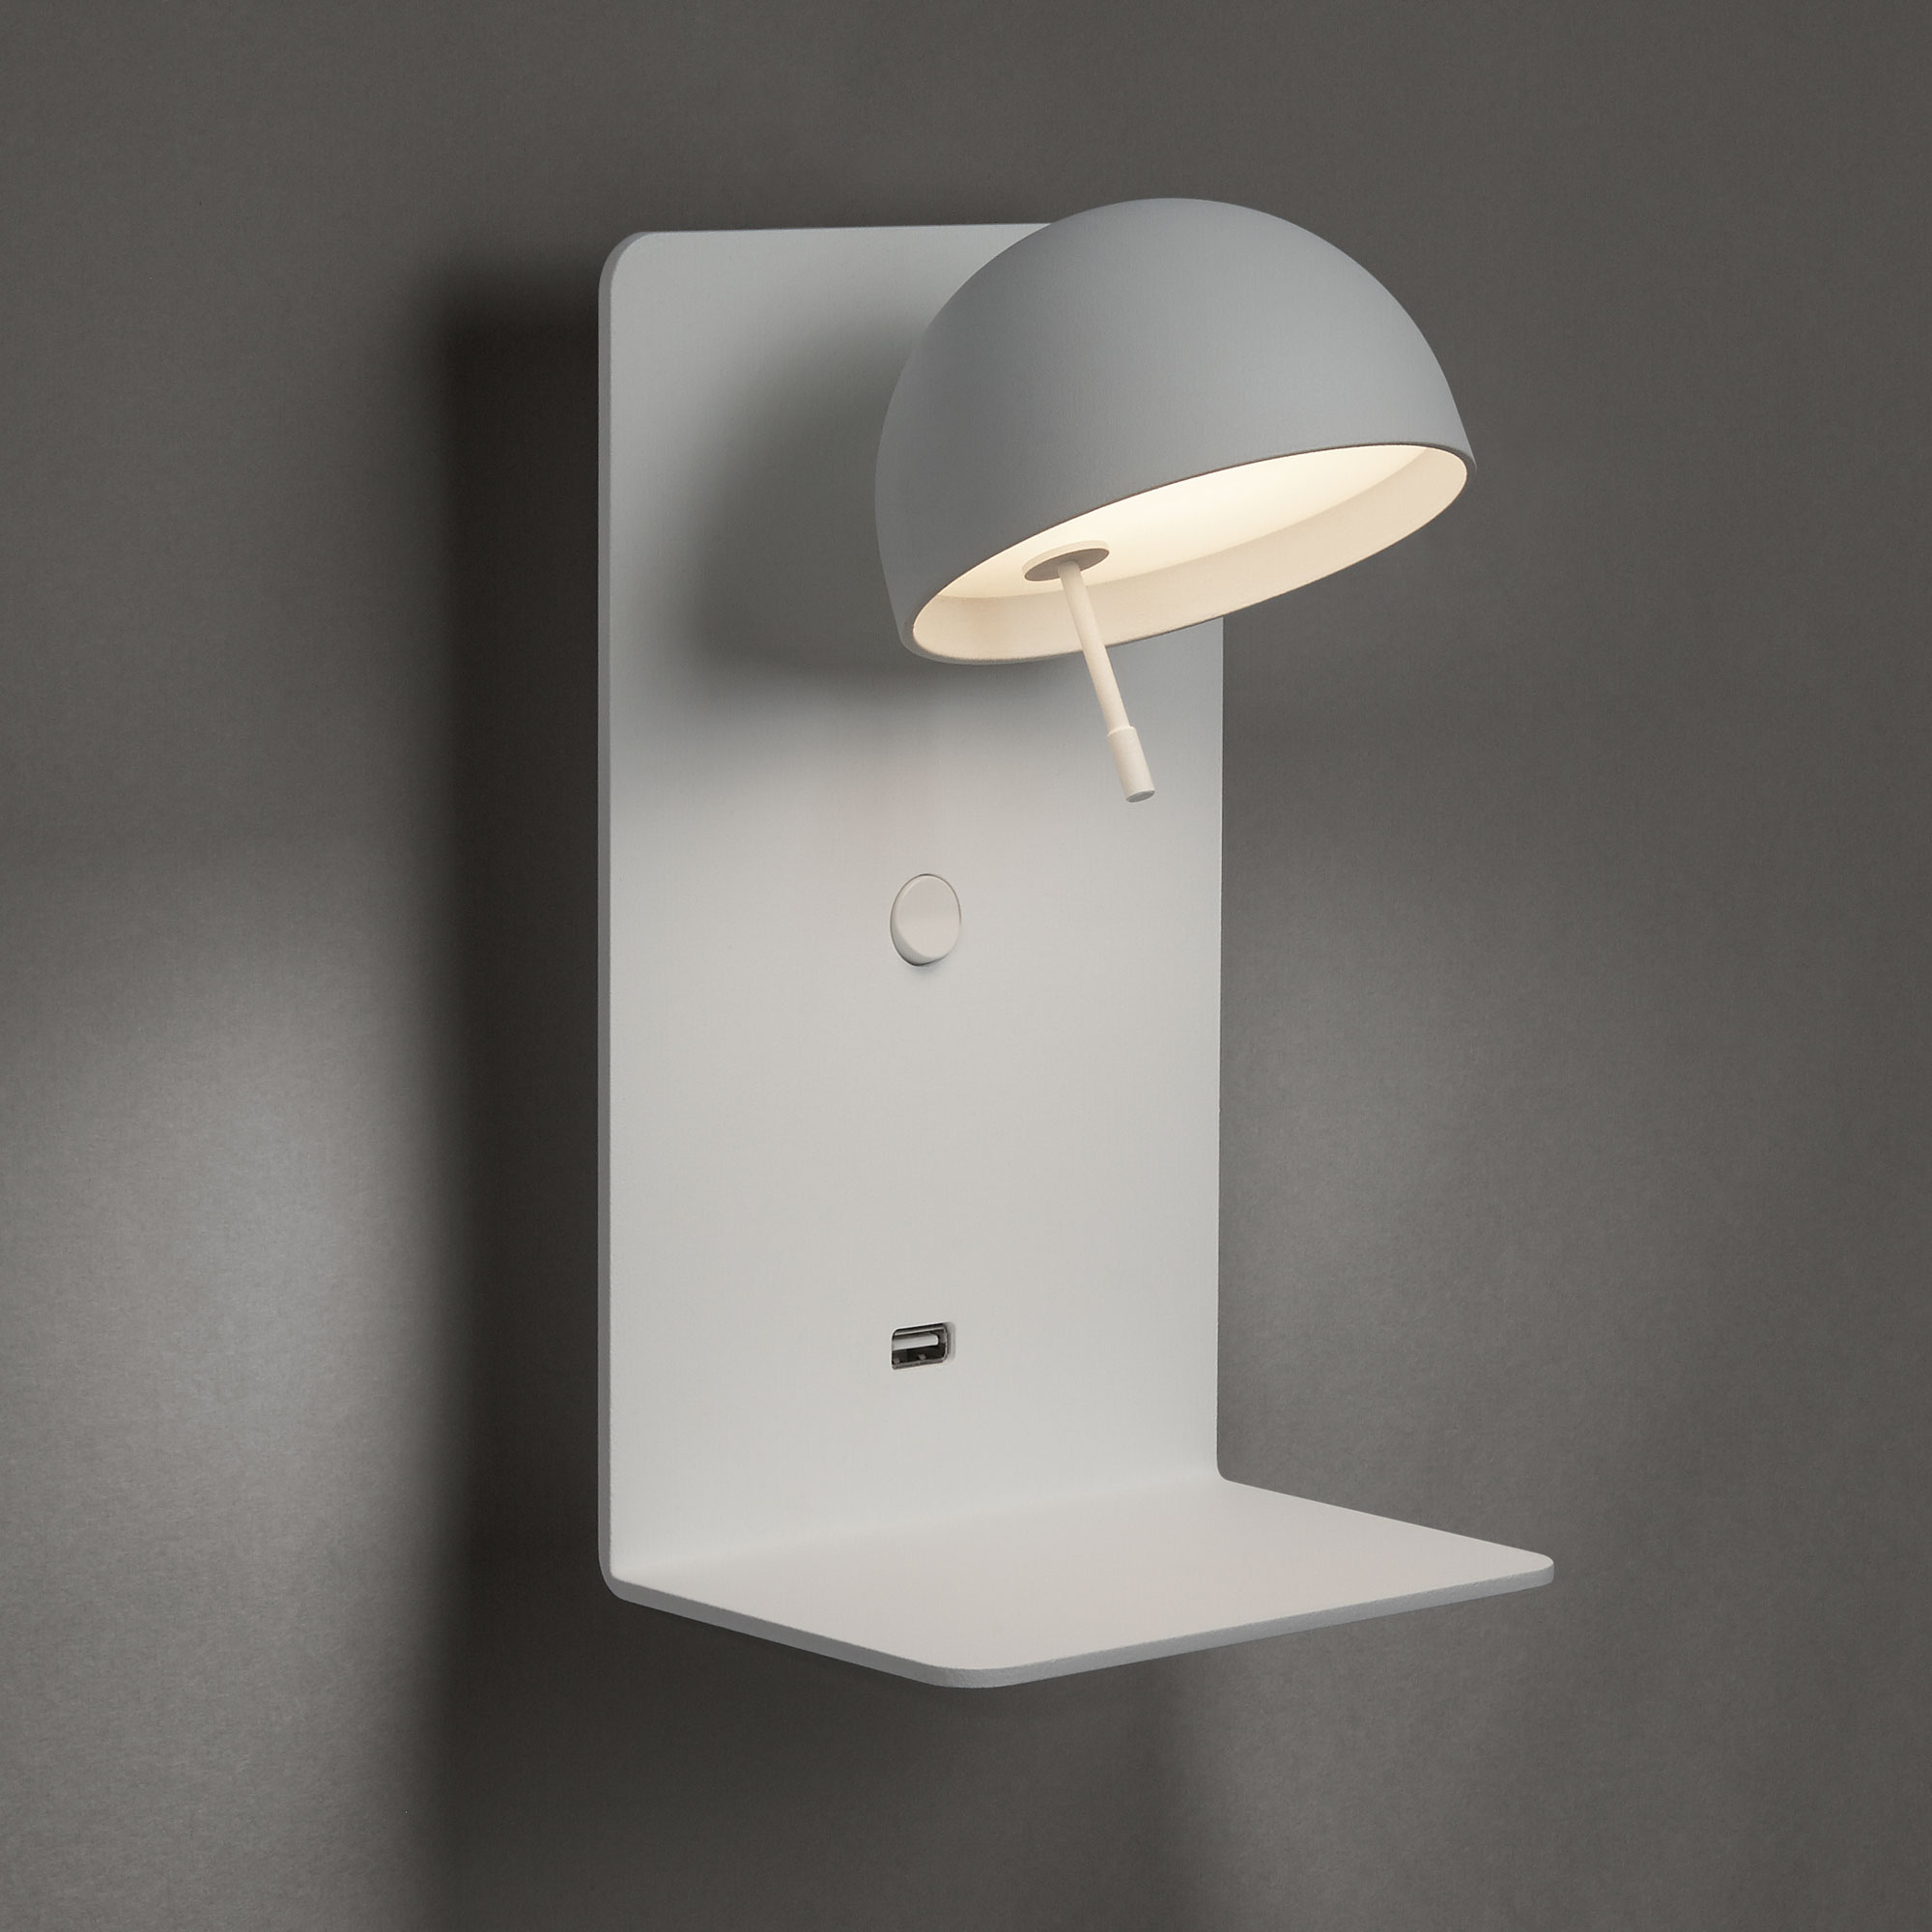 Beddy Wall Light With Shelf By Bover 23602020106u